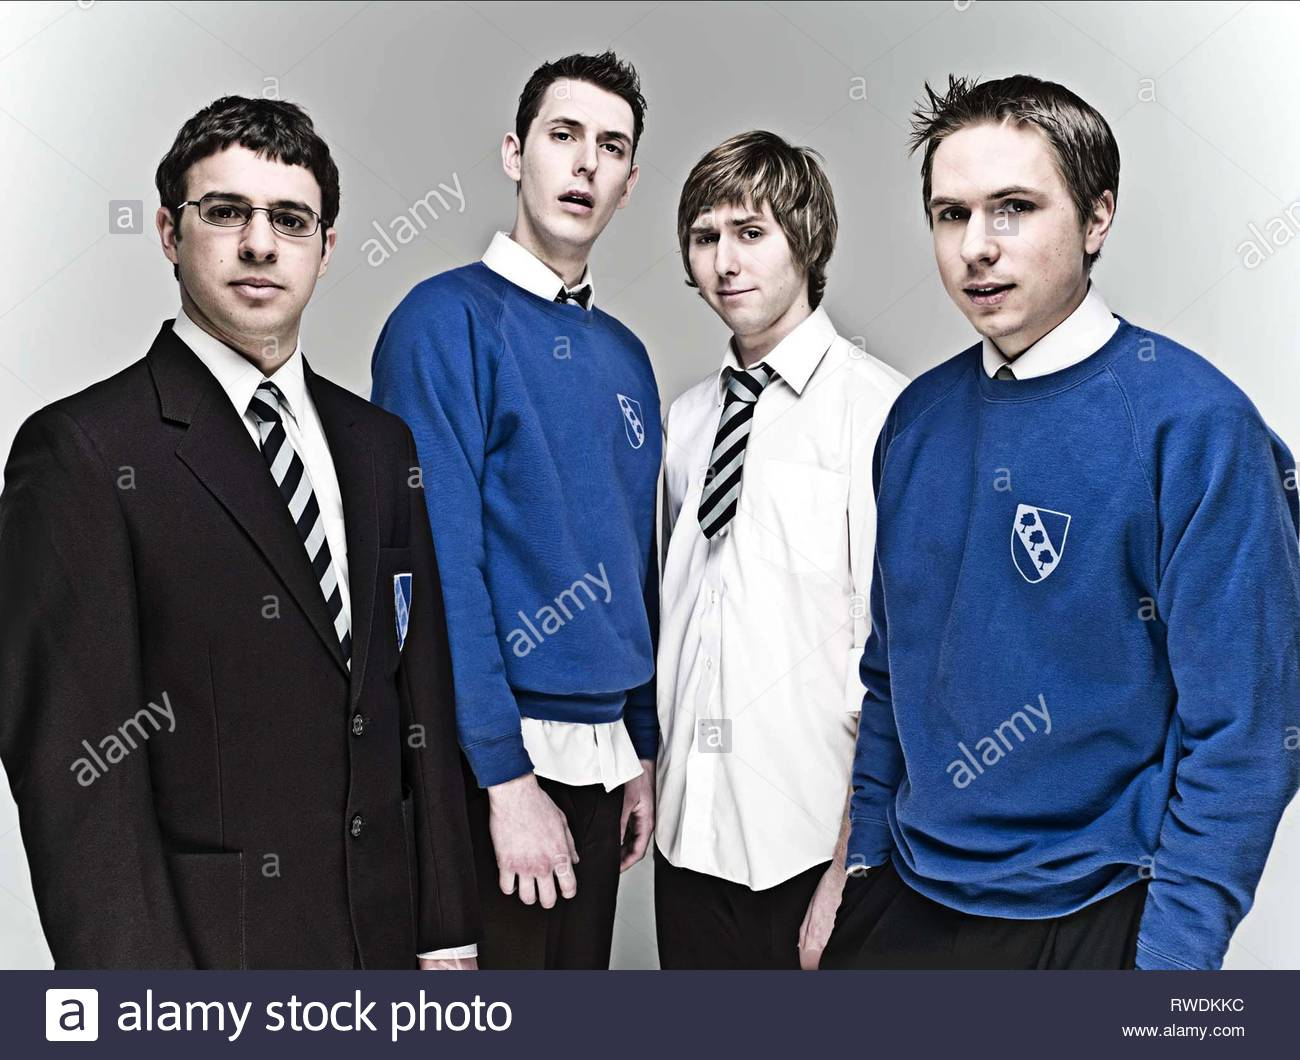 BIRD,HARRISON,BUCKLEY,THOMAS, THE INBETWEENERS, 2008 - Stock Image